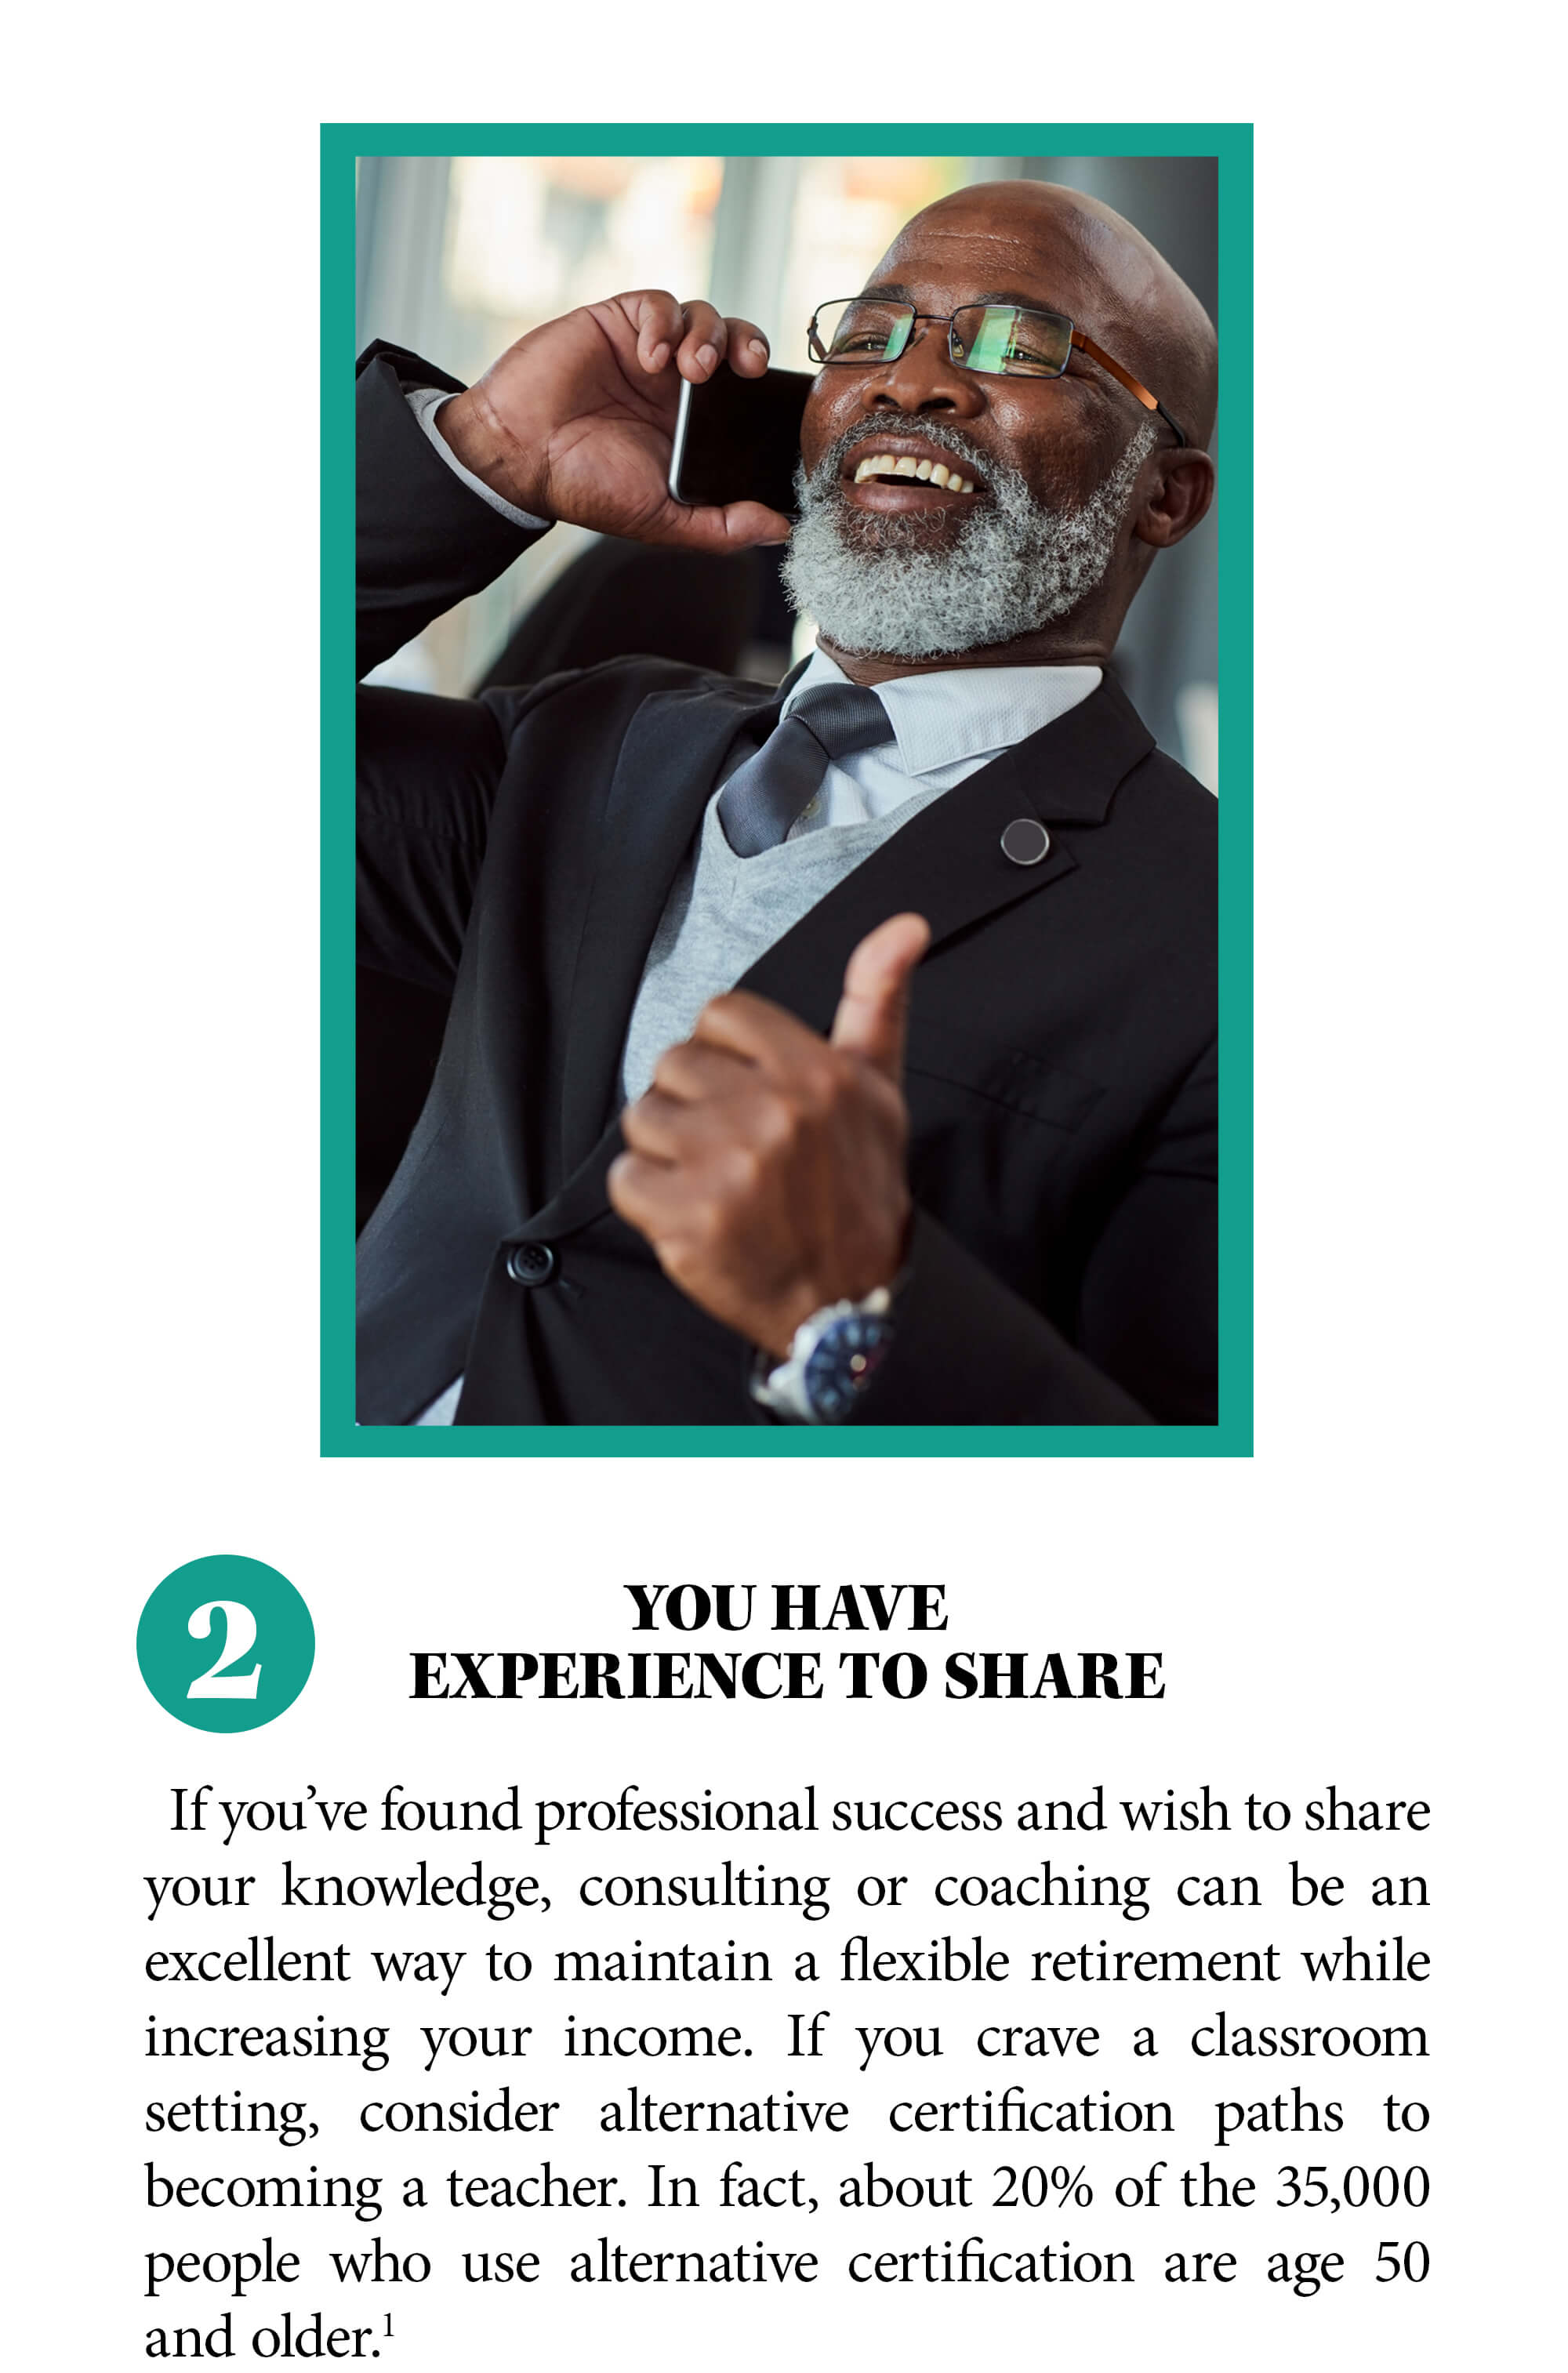 2. You have experience to share. If you've found professional success and wish to share your knowledge, consulting or coaching can be an excellent way to maintain a flexible retirement while increasing your income. If you crave a classroom setting, consider alternative certification paths to becoming a teacher. In fact, about 20% of the 35,000 people who use alternative certification are age 50 and older. Source 1